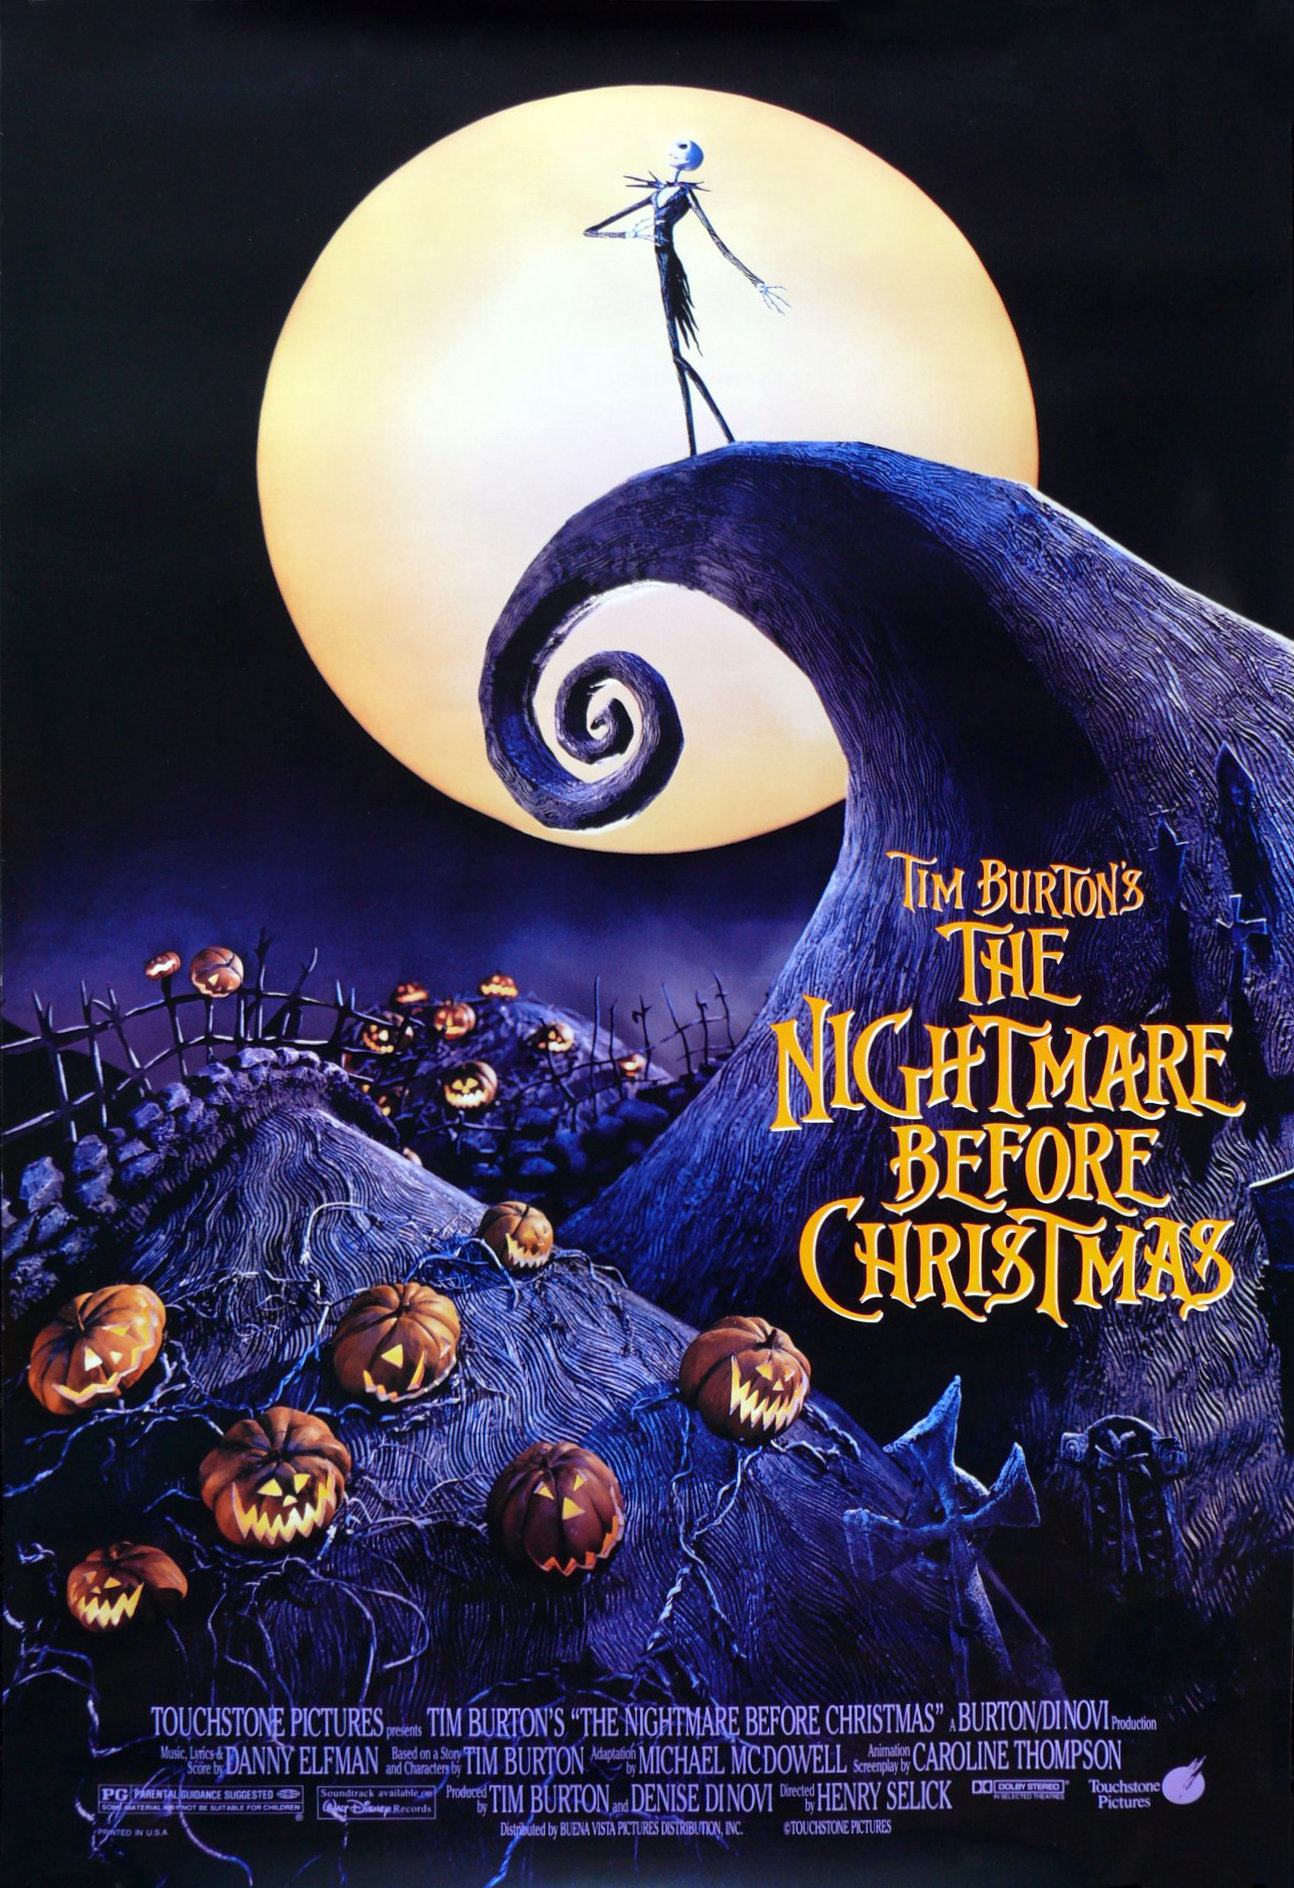 Poster design top 10 - 7 Nightmare